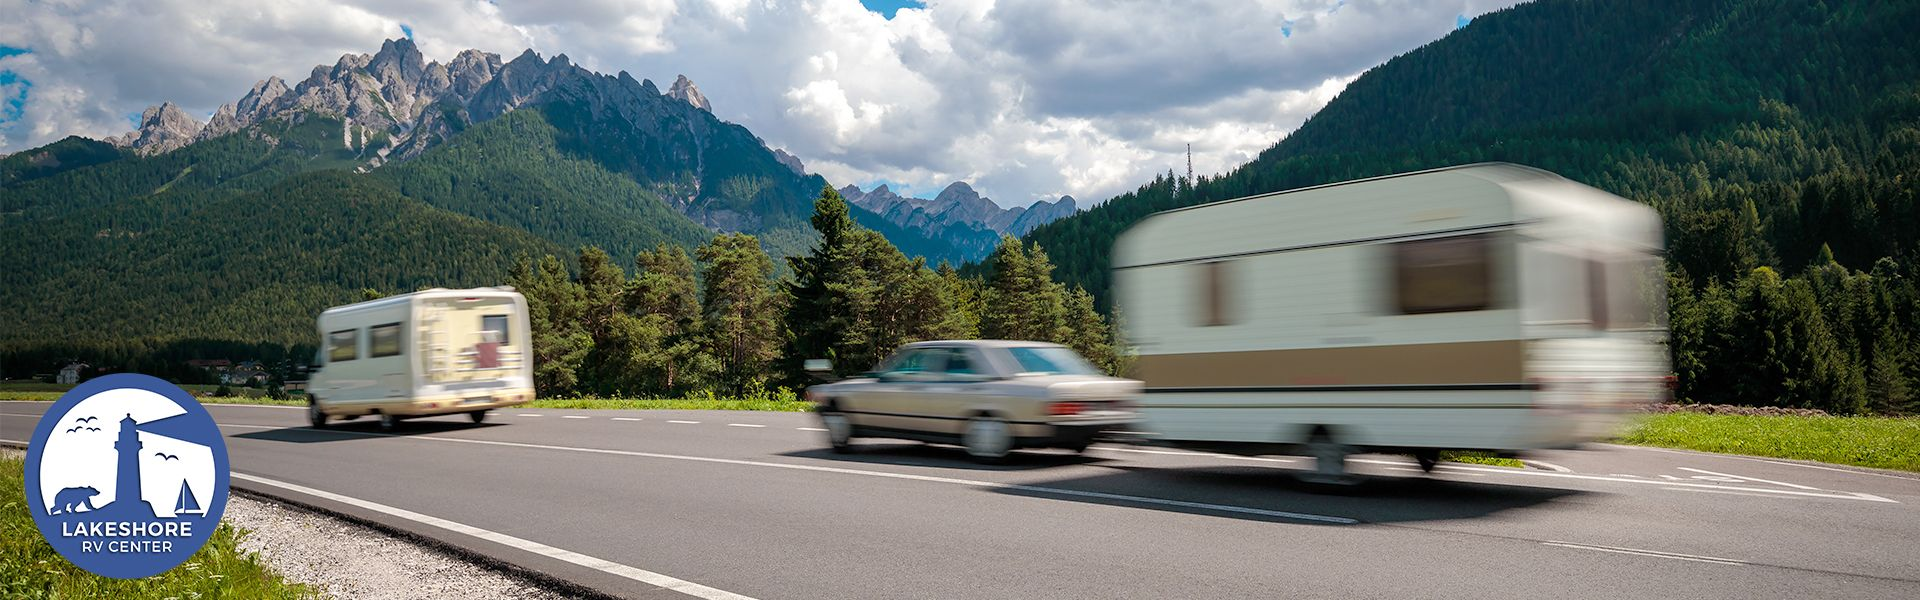 The Importance Of A Sway Control System For Towing An Rv